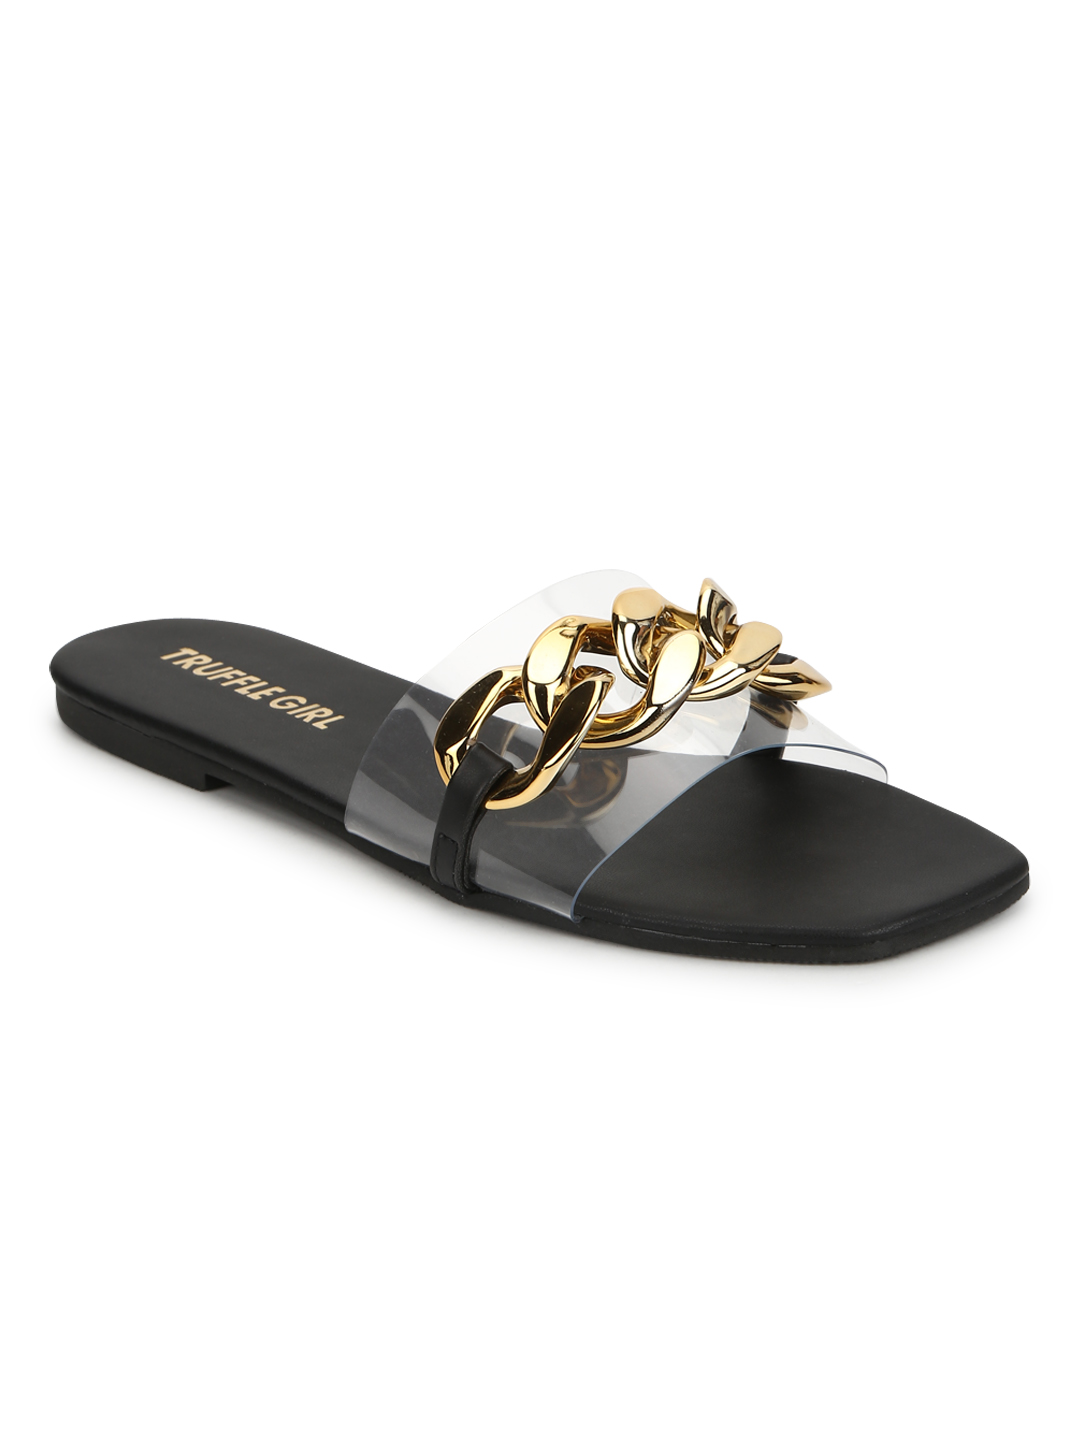 Truffle Collection | Truffle Collection Black PU Gold Chain Slides